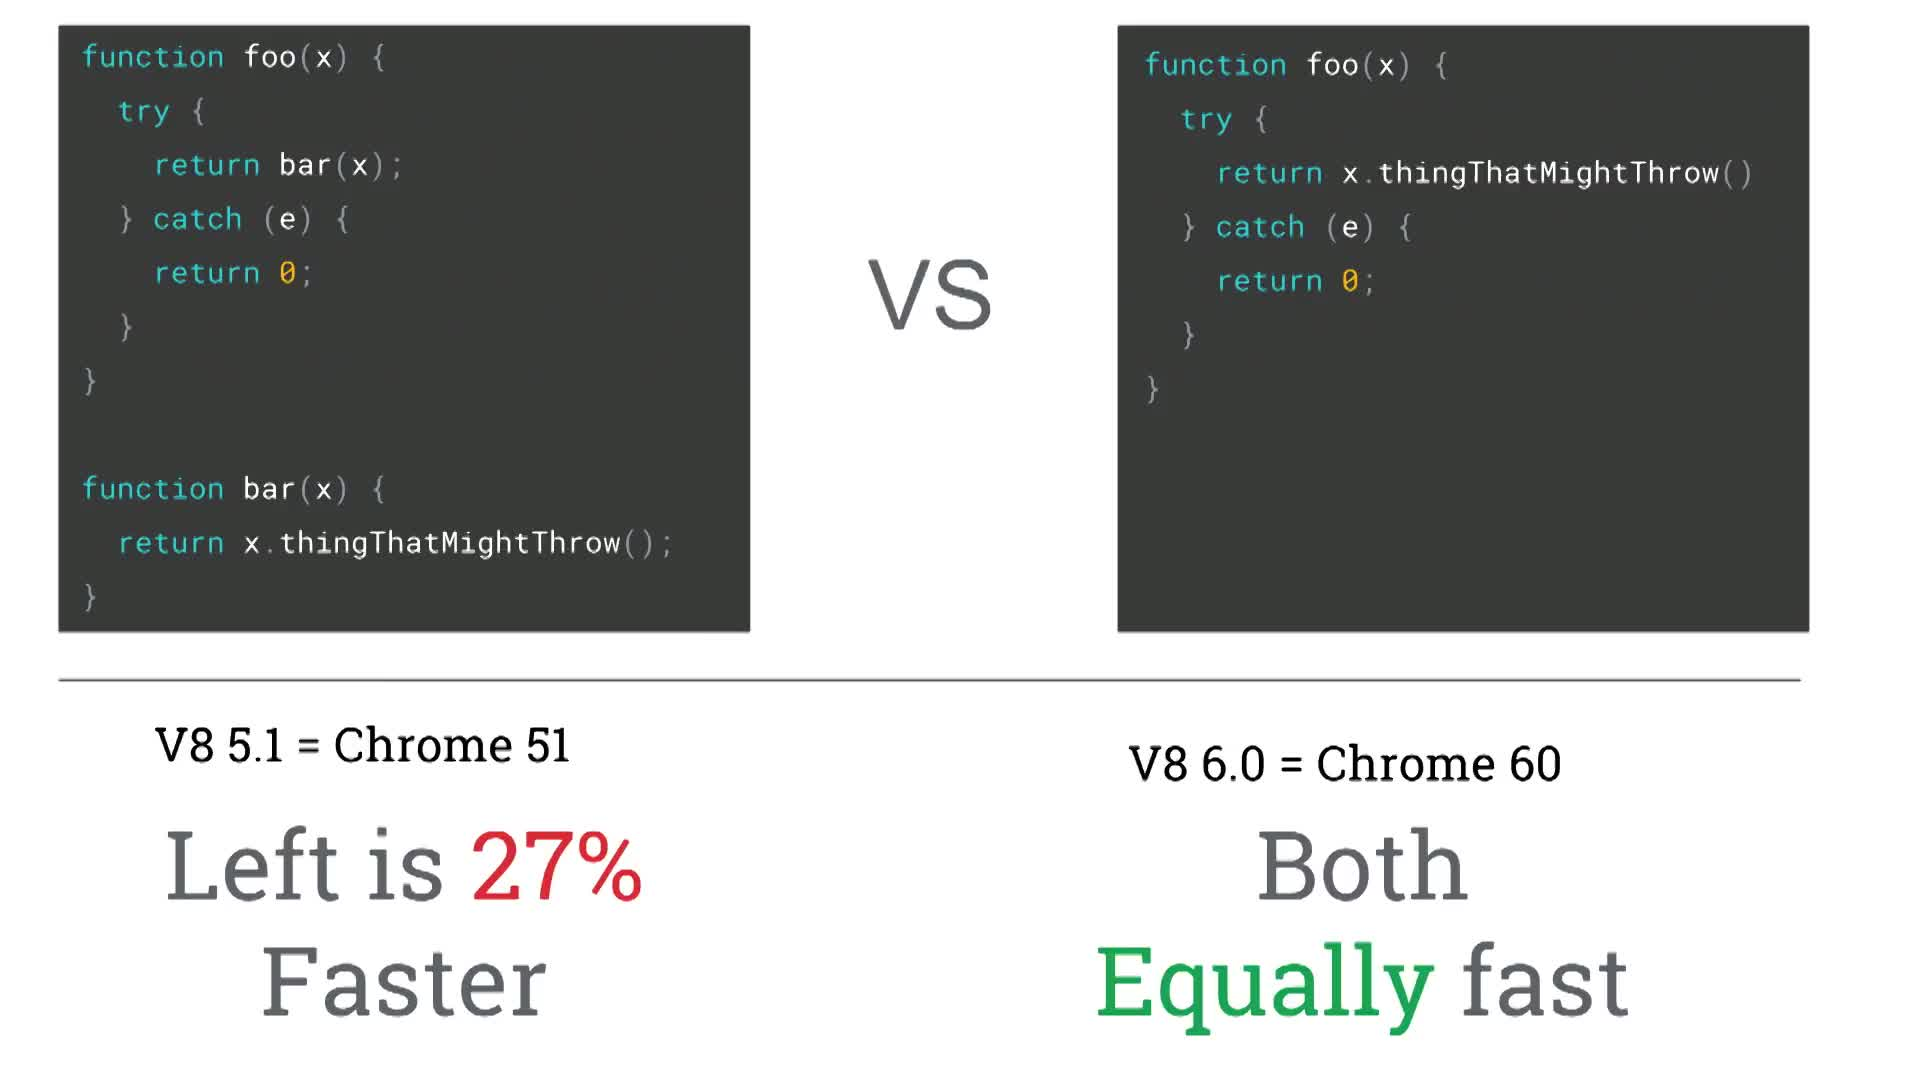 V8 Today and in the Future (Chrome Dev Summit 2017)